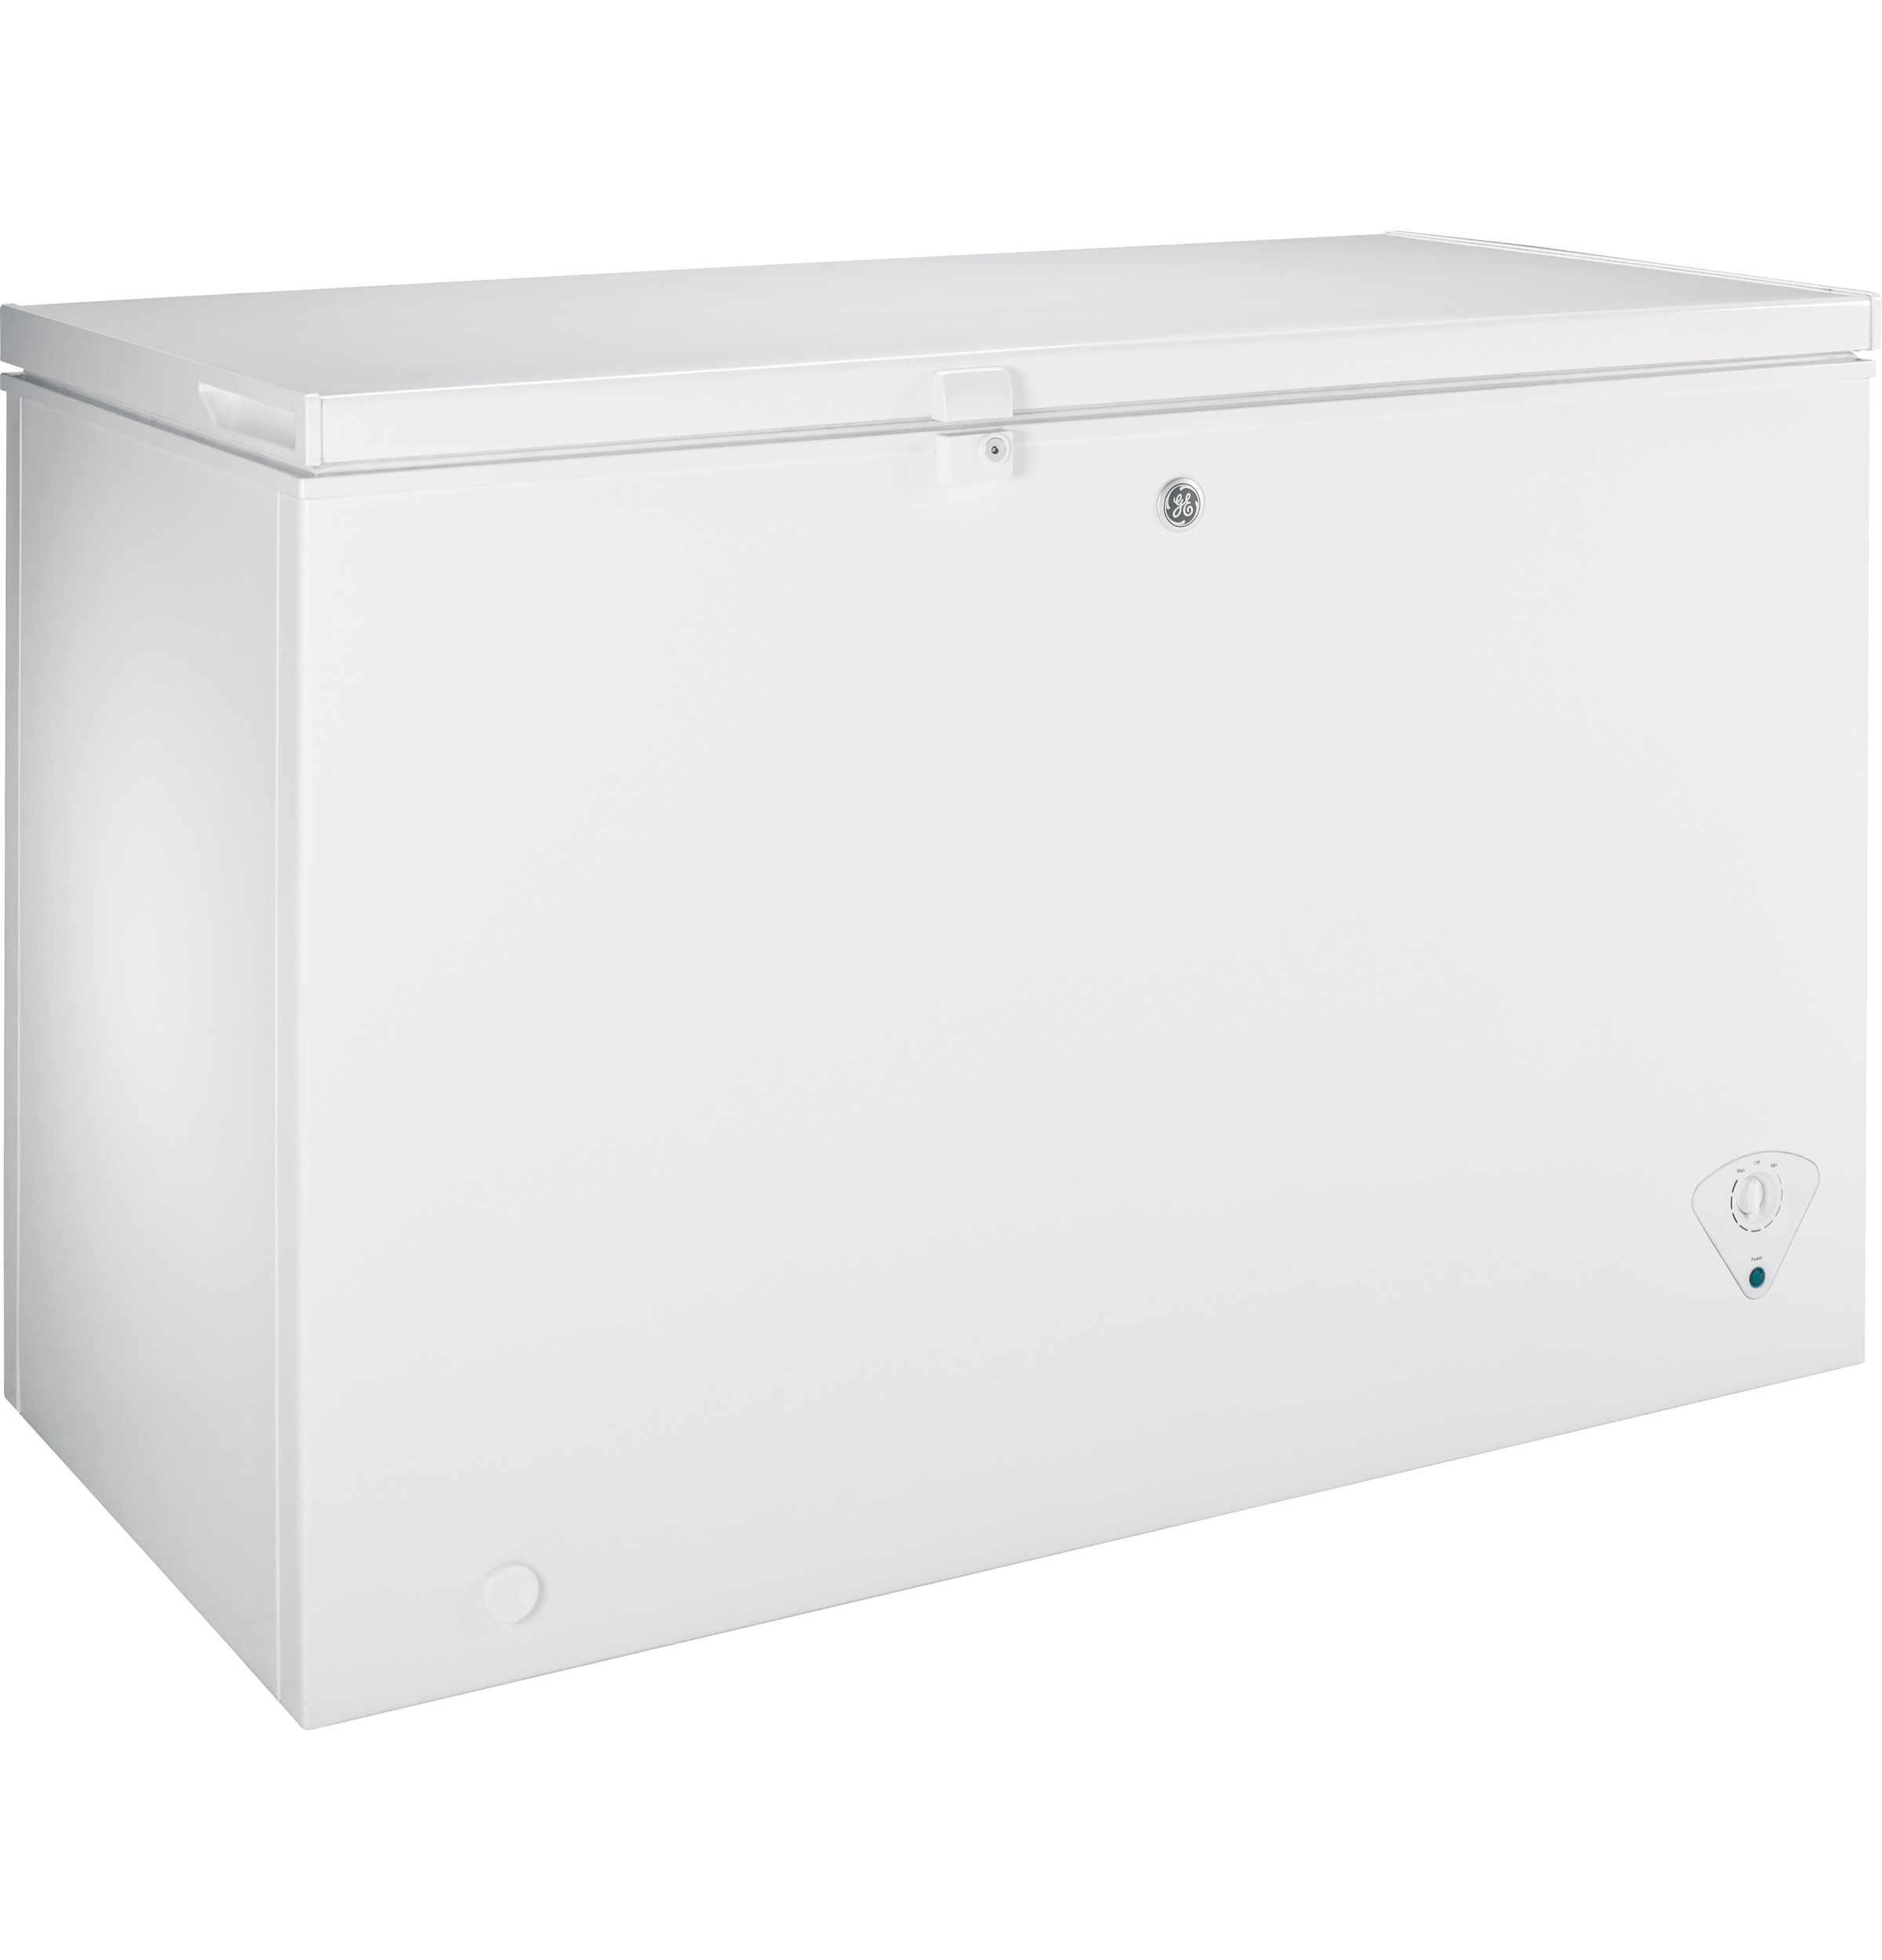 Model: FCM11PHWW | GE GE® ENERGY STAR® 10.6 Cu. Ft. Manual Defrost Chest Freezer